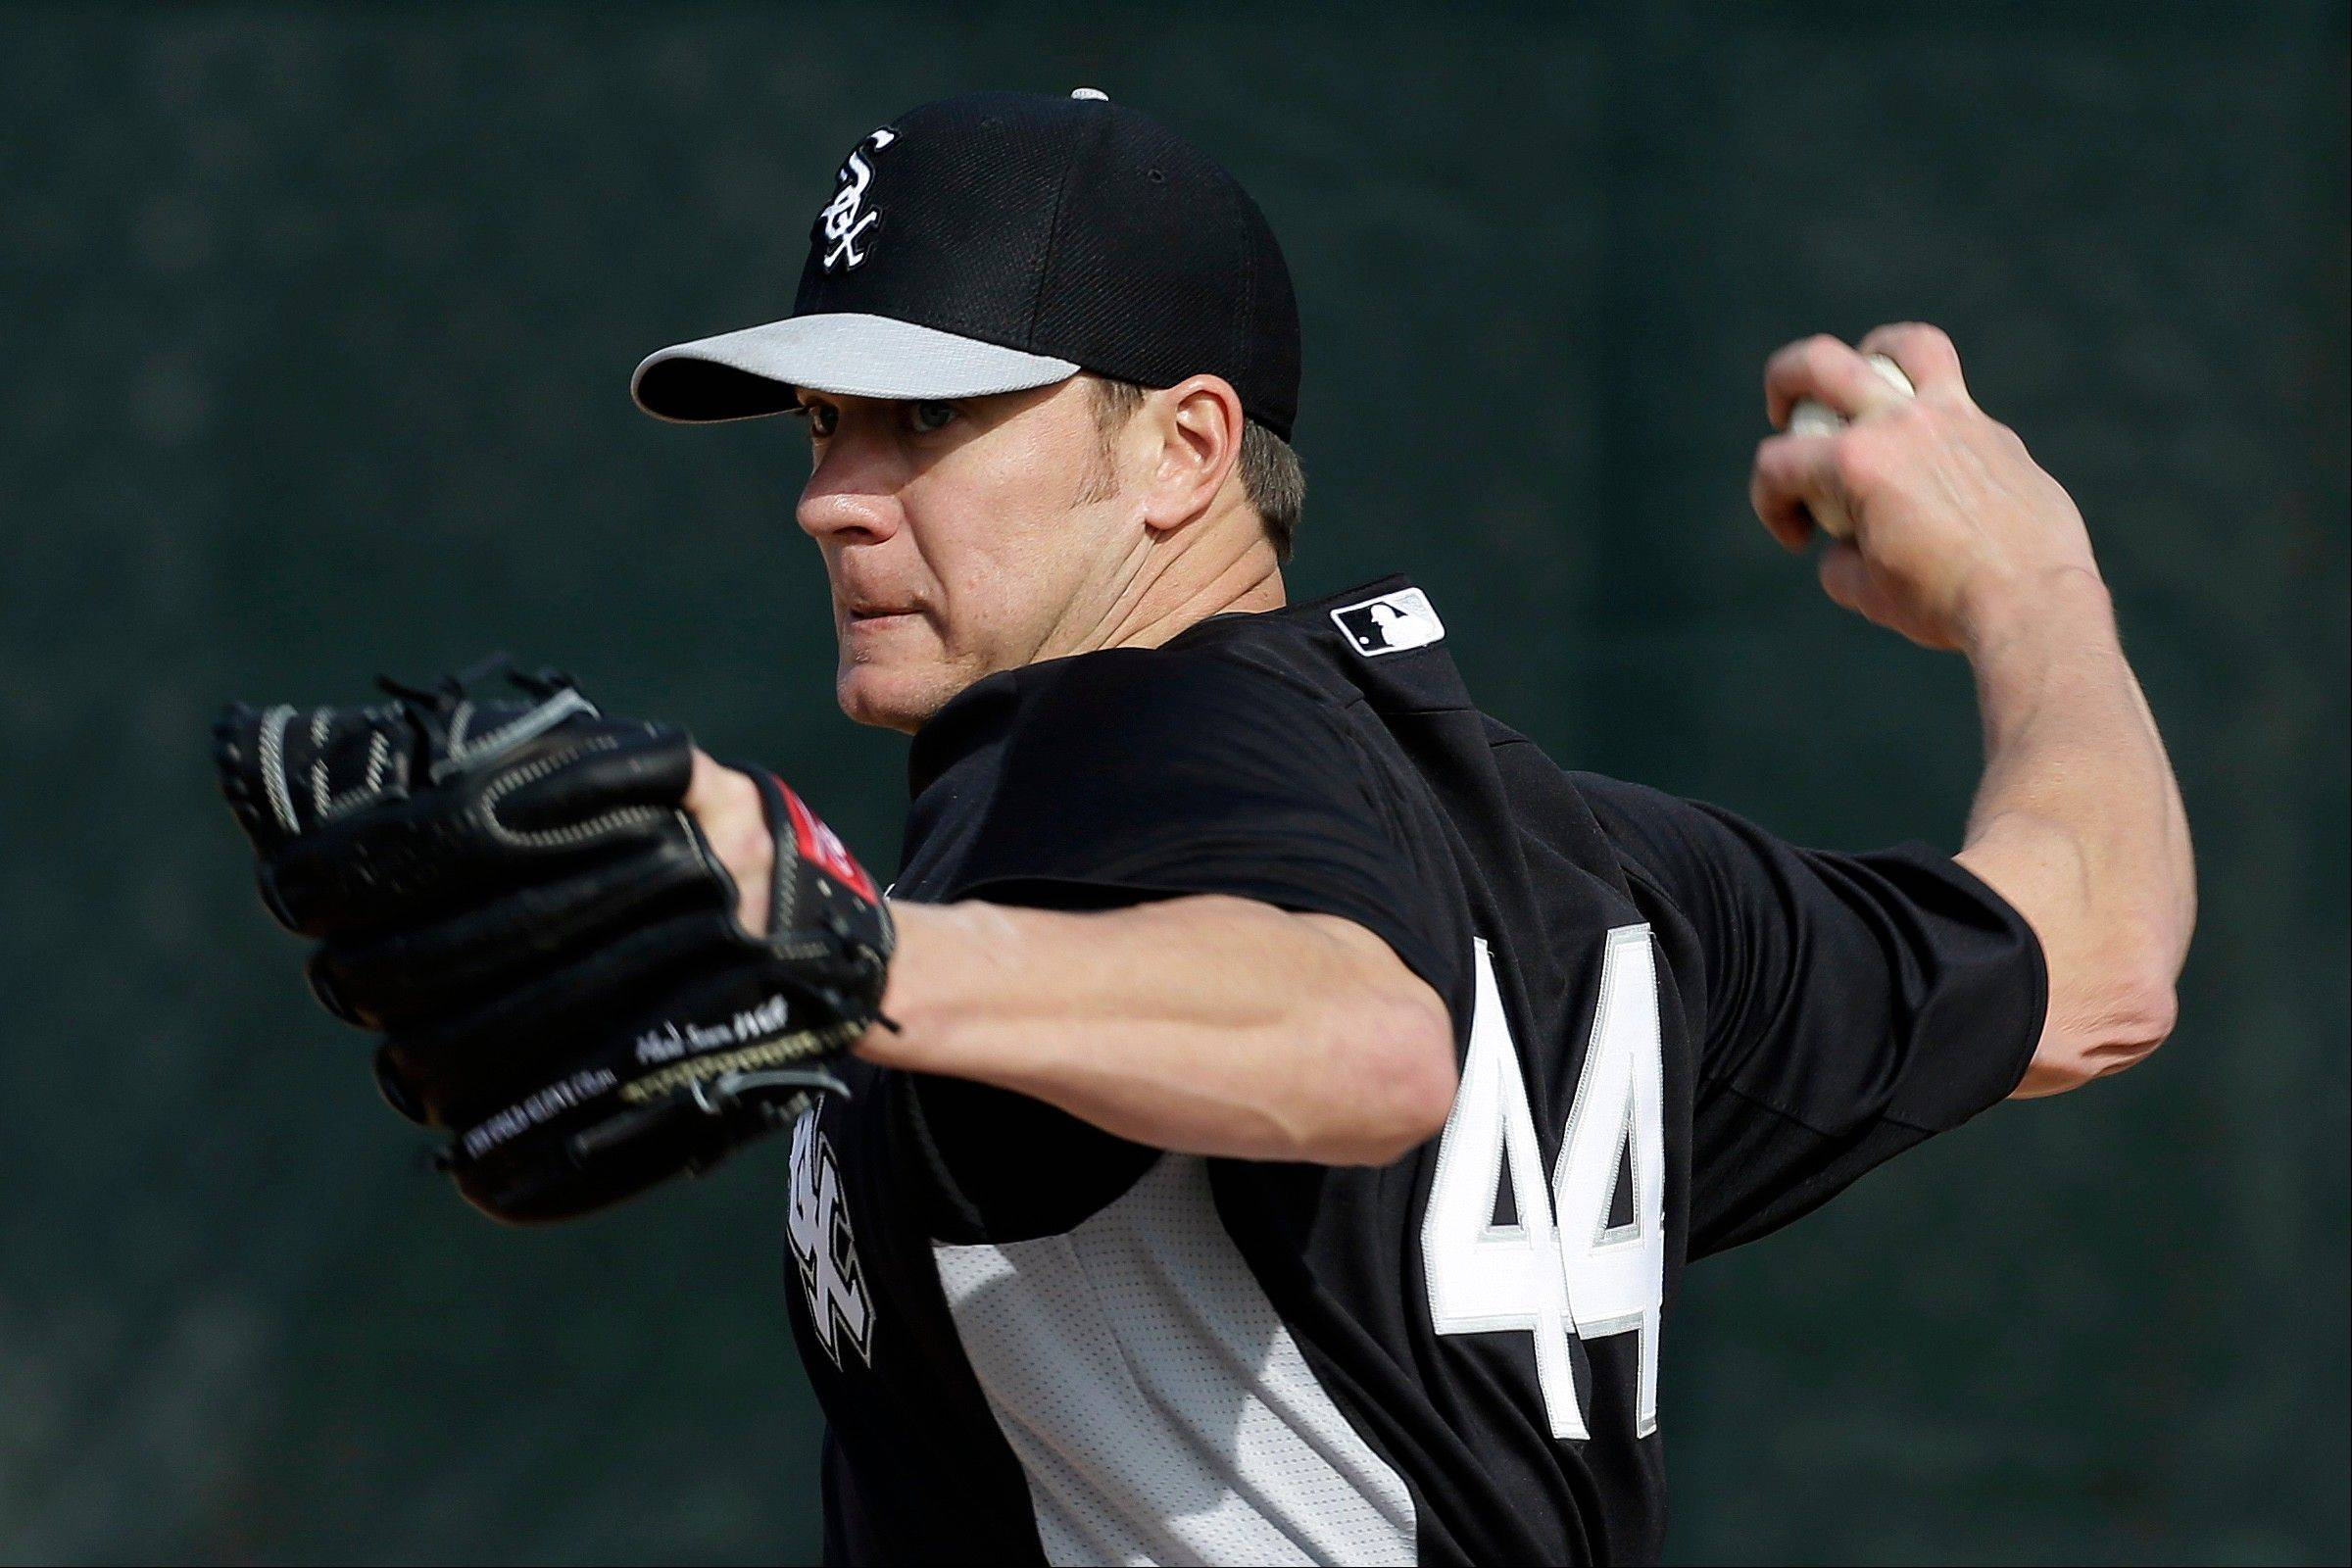 White Sox starting pitcher Jake Peavy maintains a positive attitude and also leads by example.